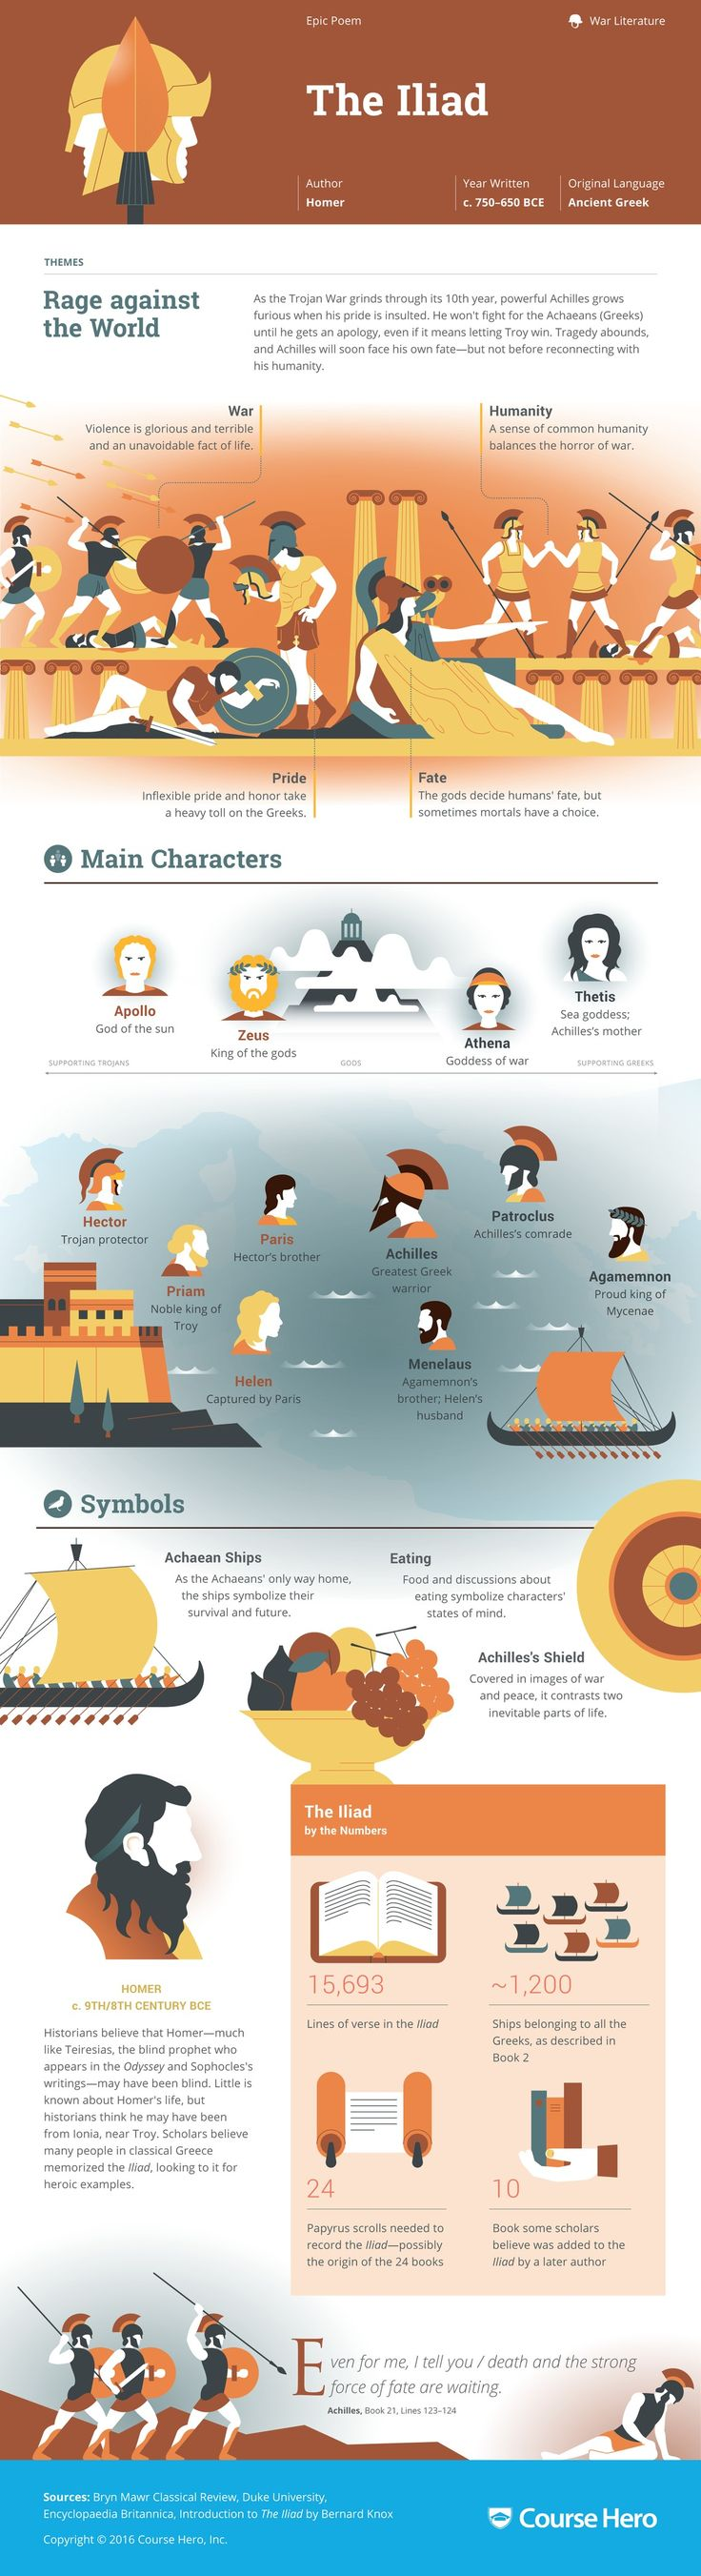 The Iliad Infographic | Course Hero